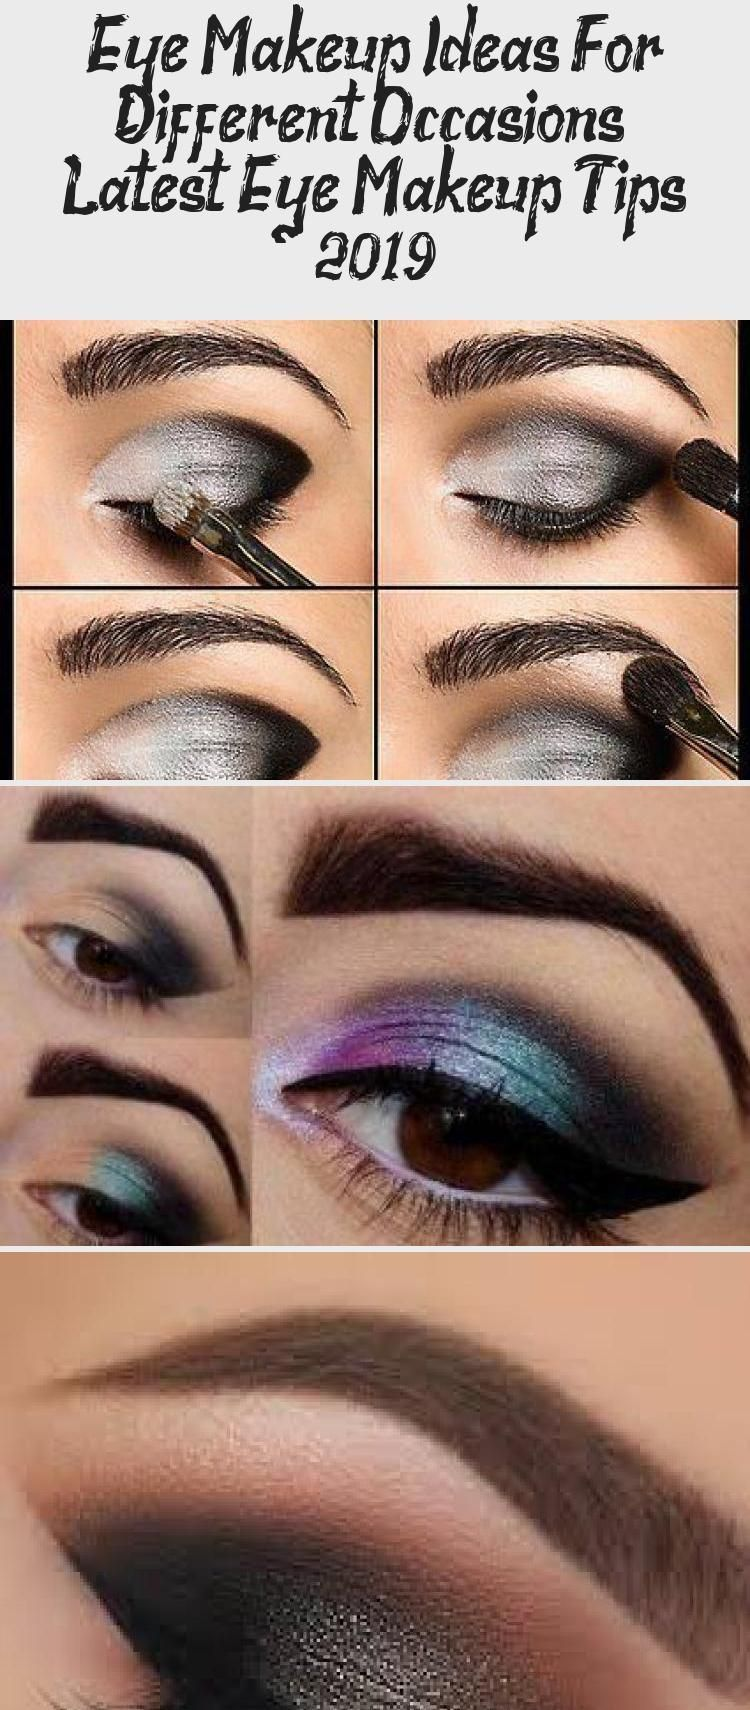 Eye Makeup Ideas For Different Occasions  Latest Eye Makeup Tips